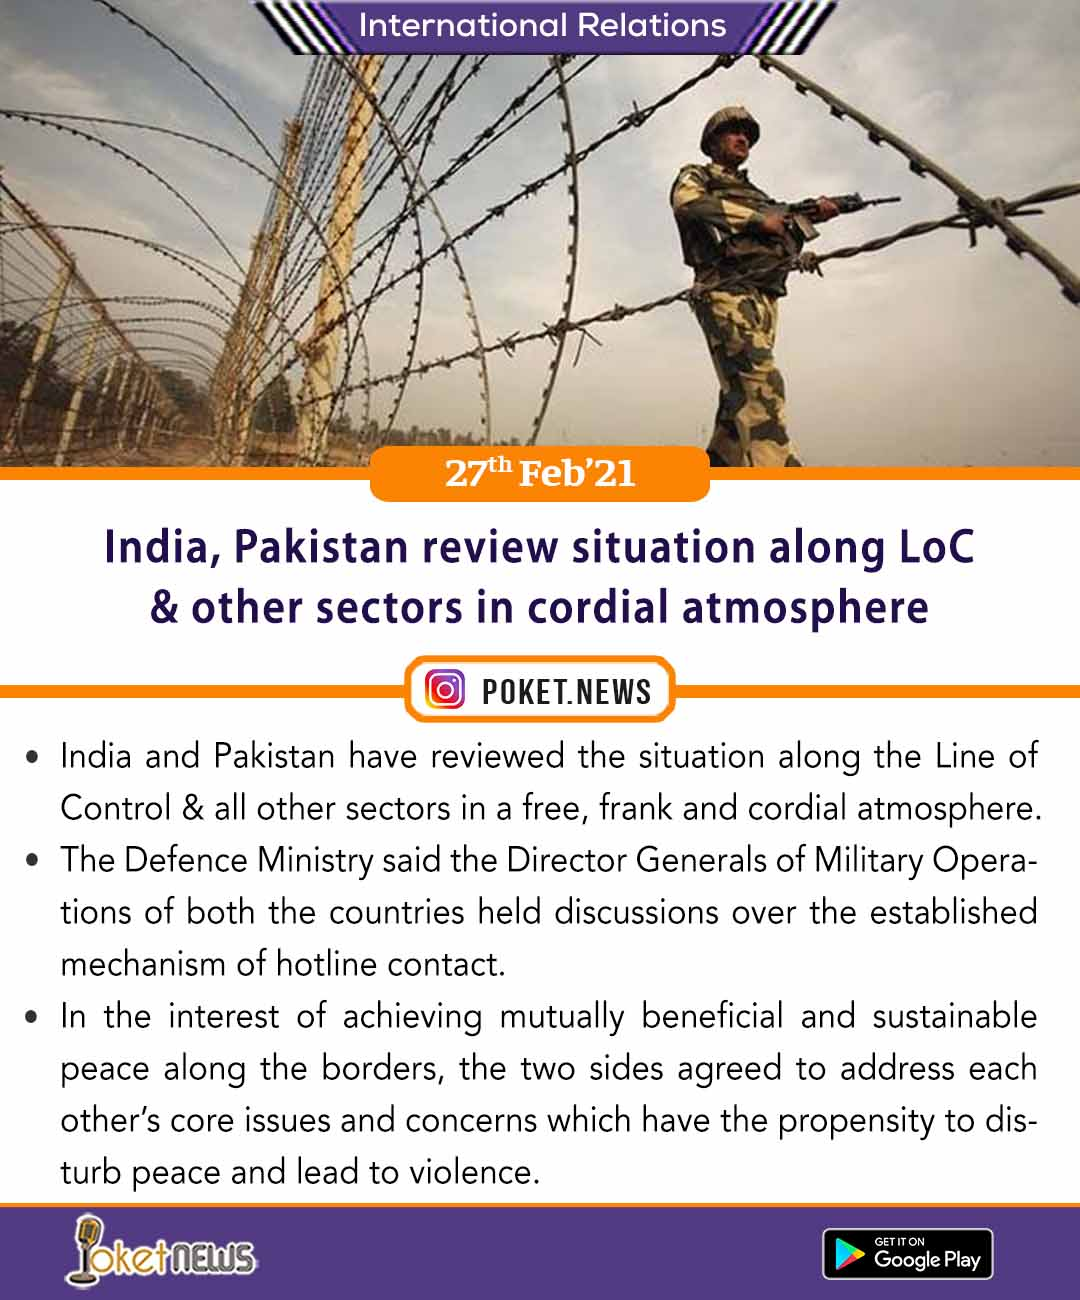 India, Pakistan review situation along LoC & other sectors in cordial atmosphere